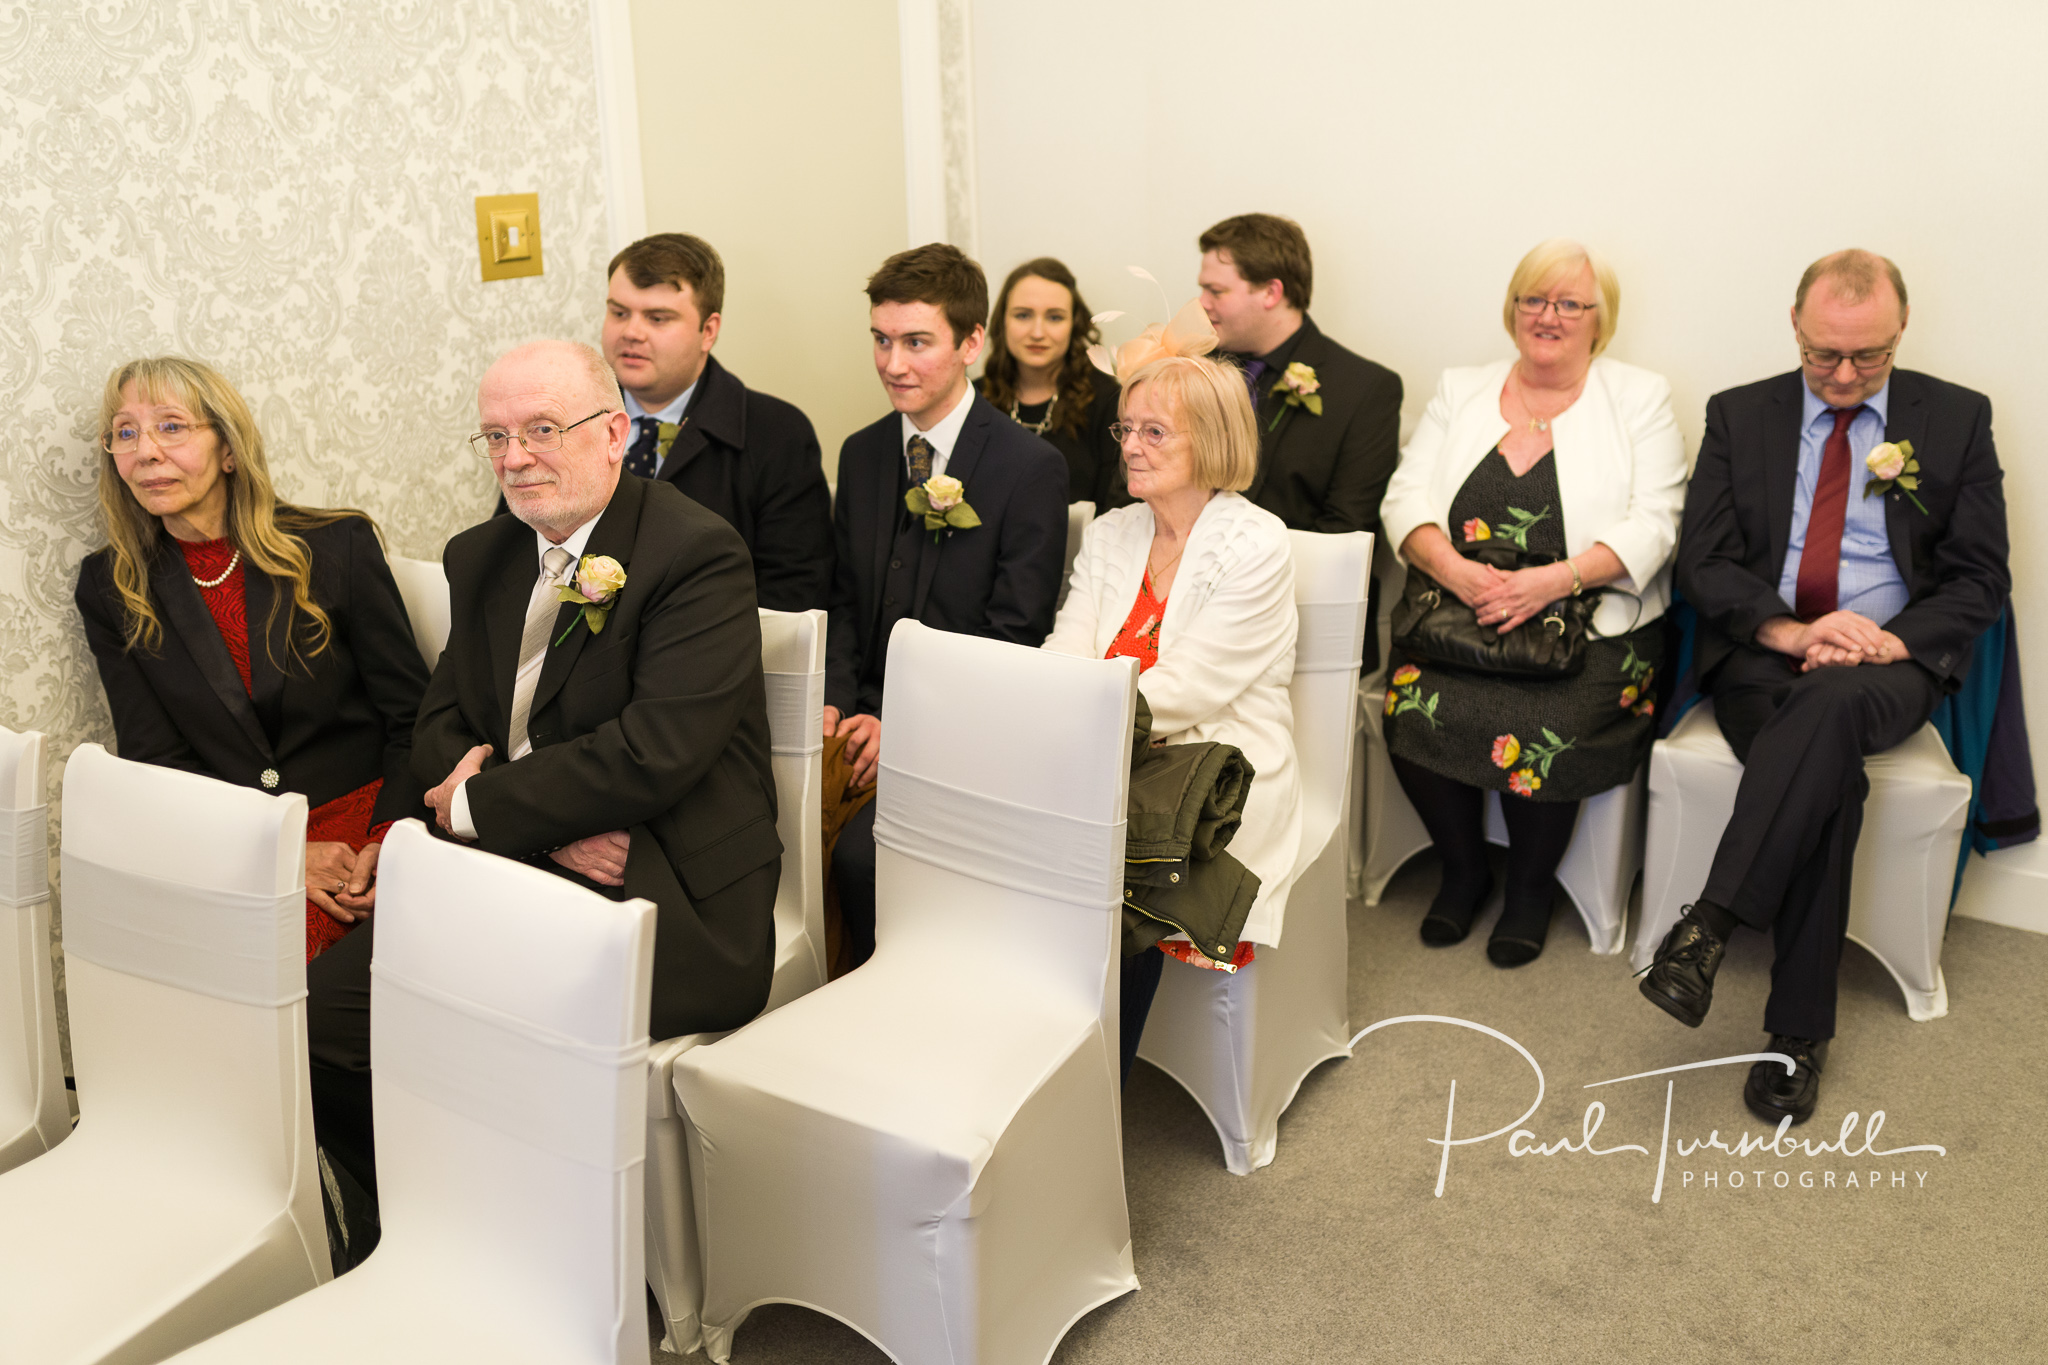 wedding-photographer-pontefract-yorkshire-laura-keanu-019.jpg